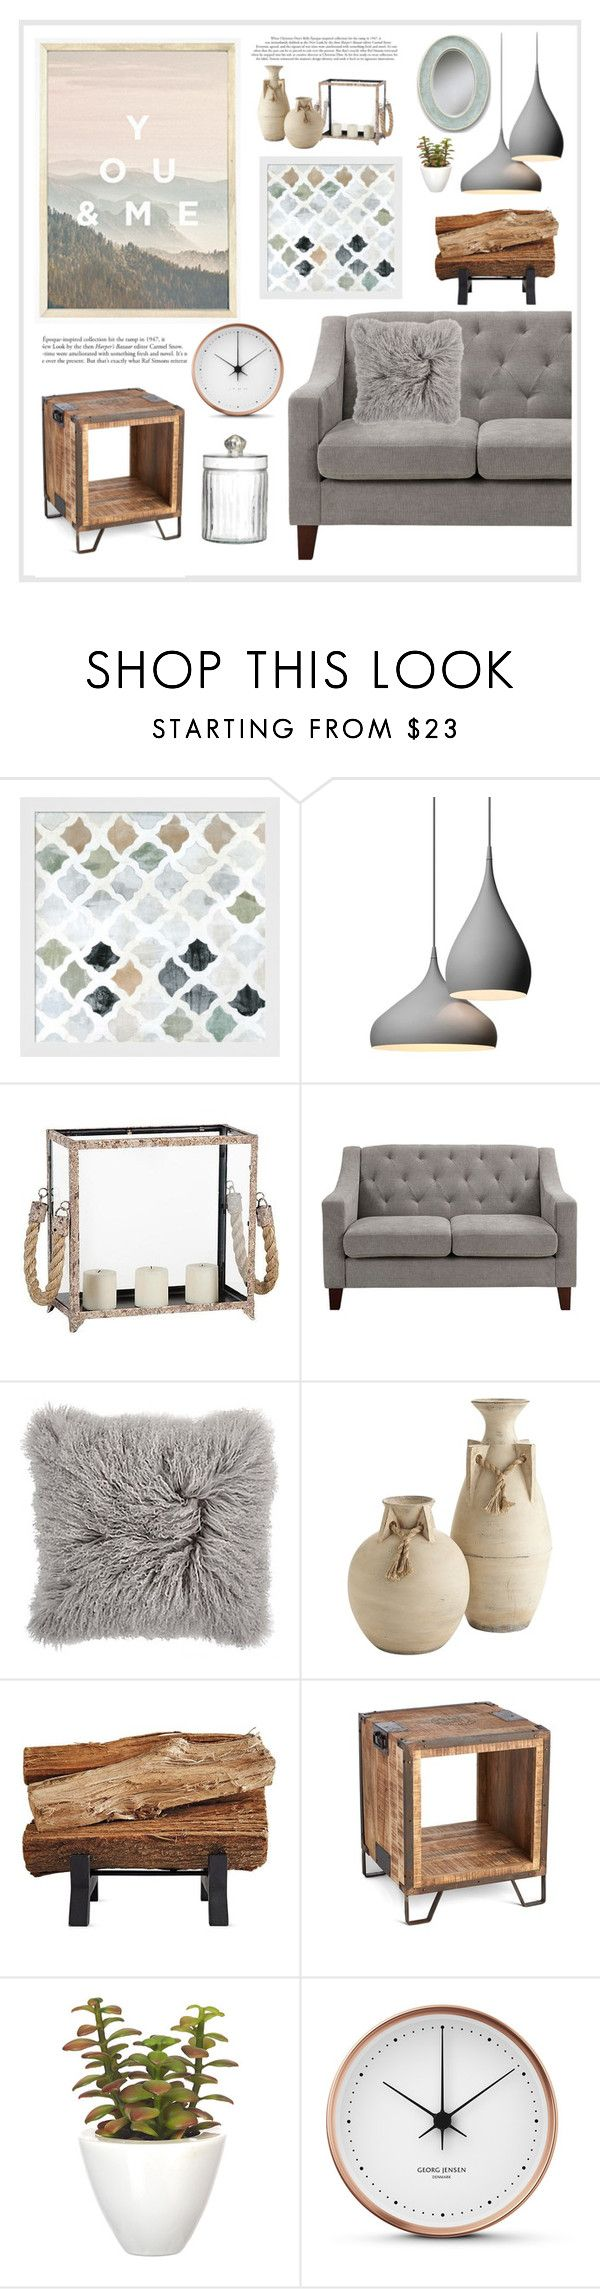 Home decor collage from january 2017 featuring currey company -  Sin T Tulo 2114 By Liliblue Liked On Polyvore Featuring Interior Interiors